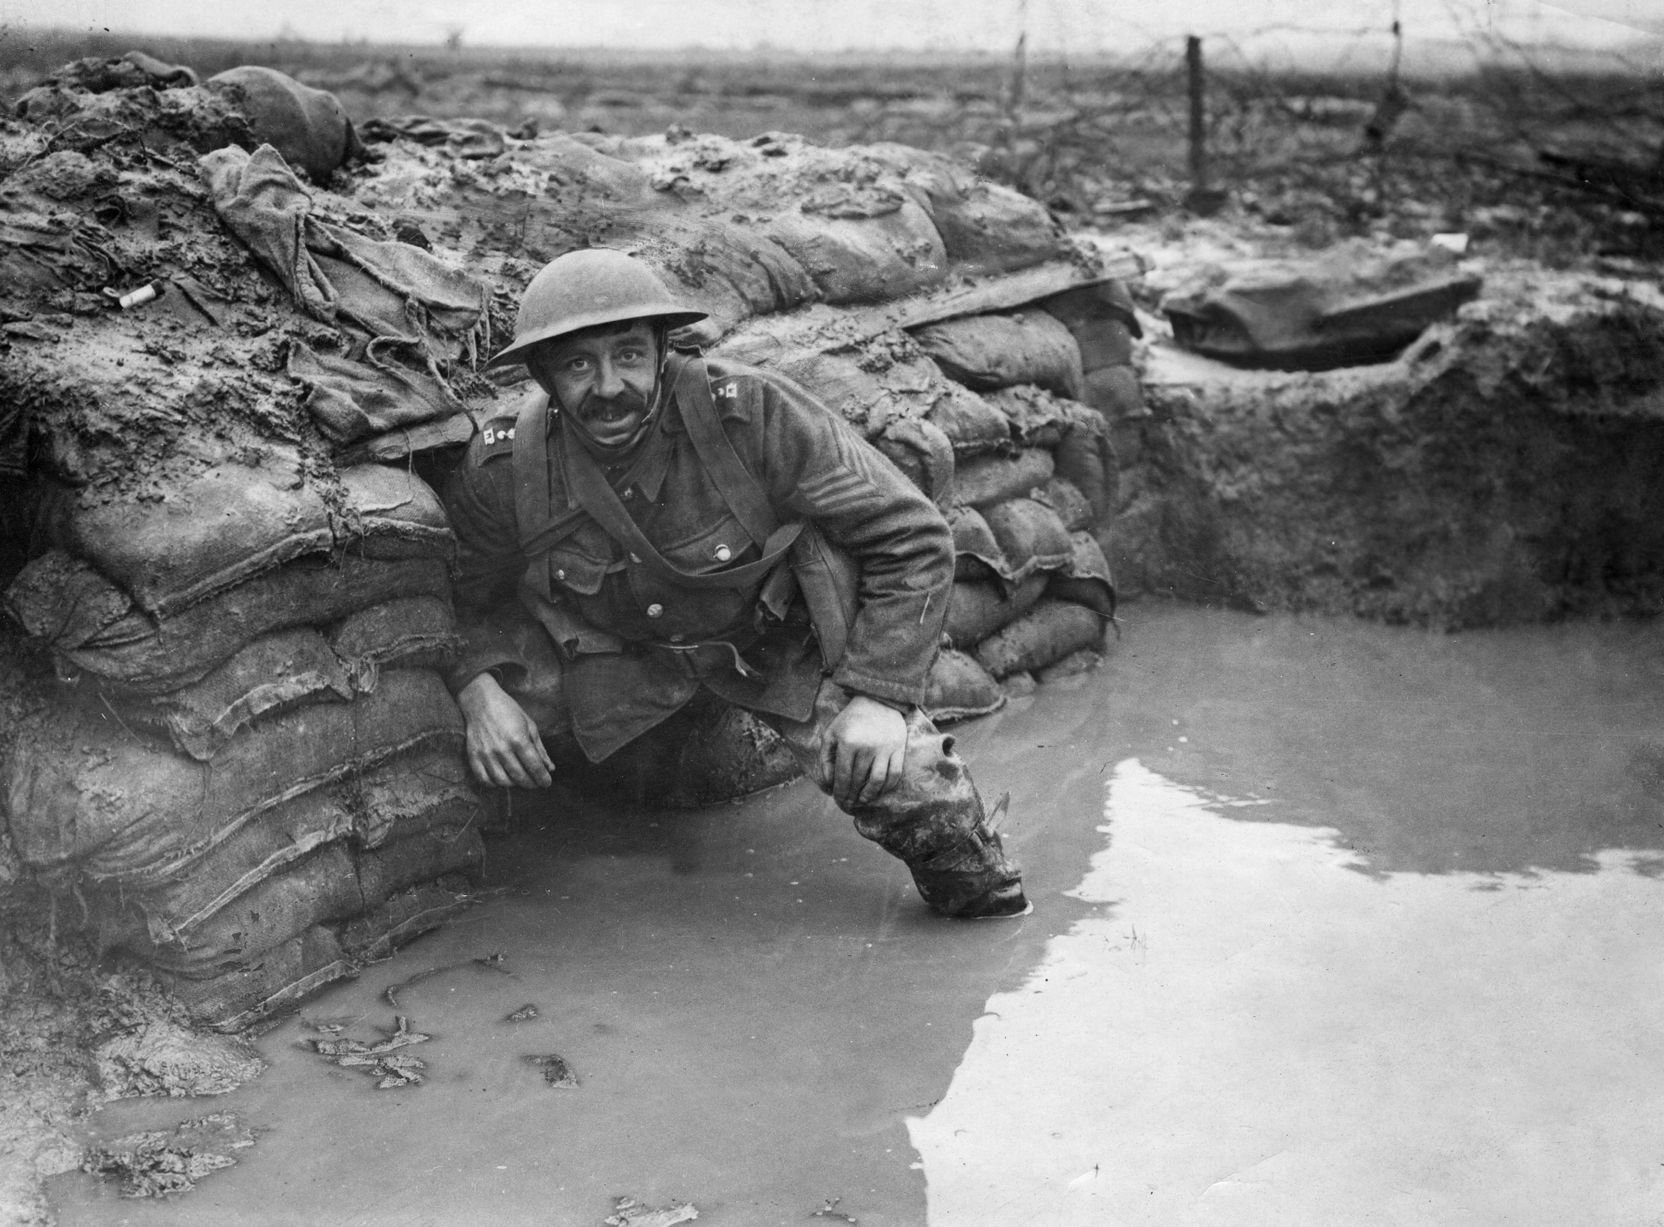 Ww1 Pictures Powerful Images Show Full Horror Of Life In